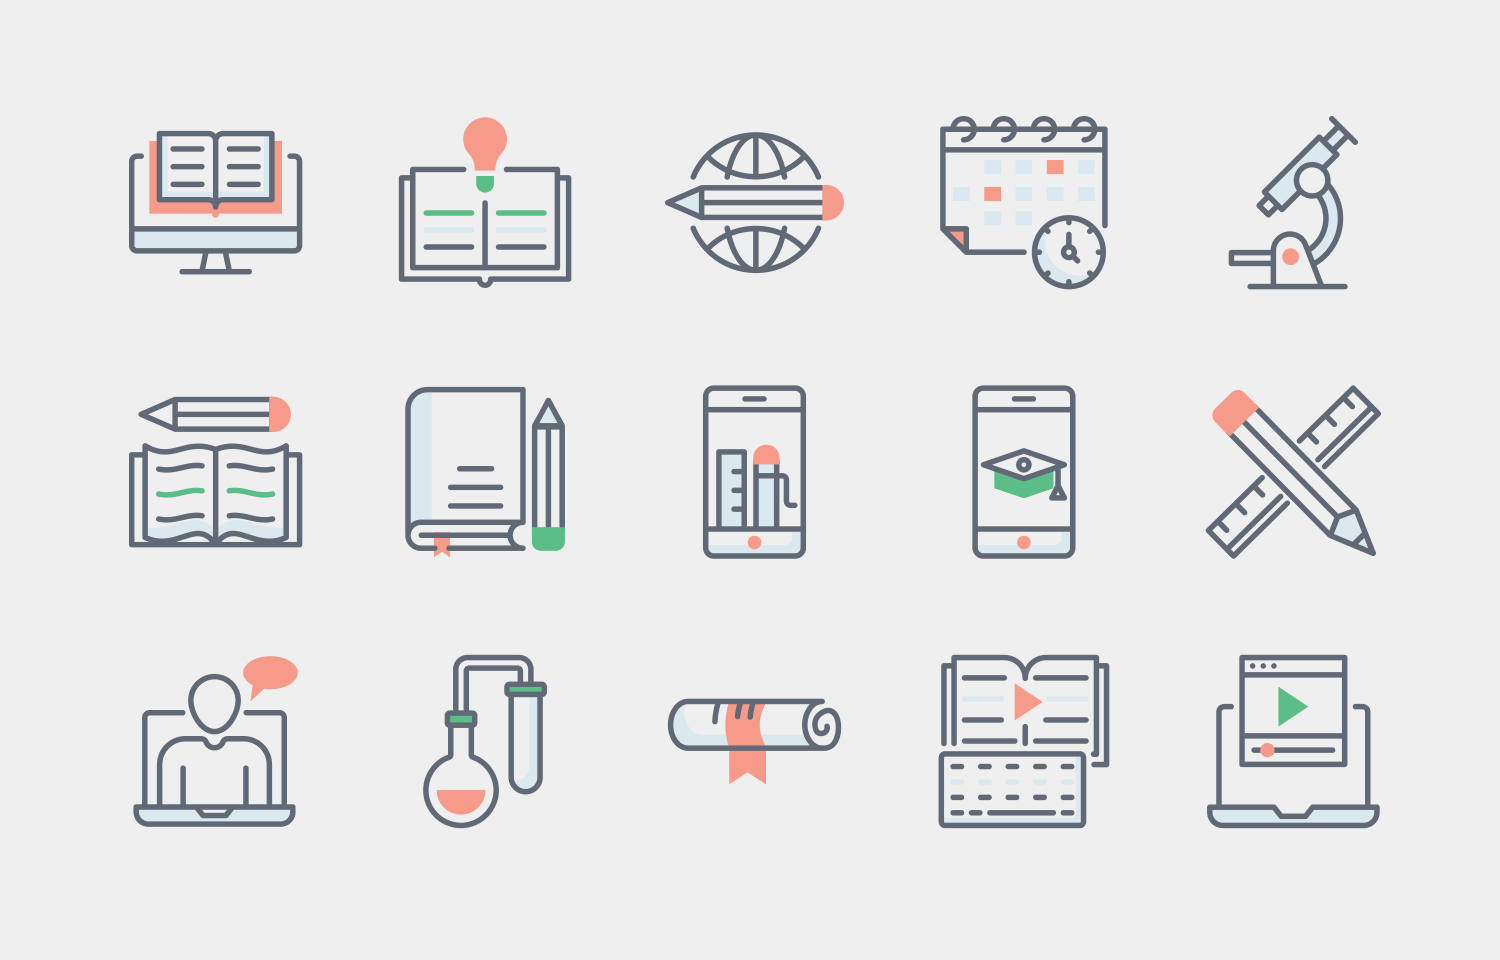 Free website icons to download for your next web design